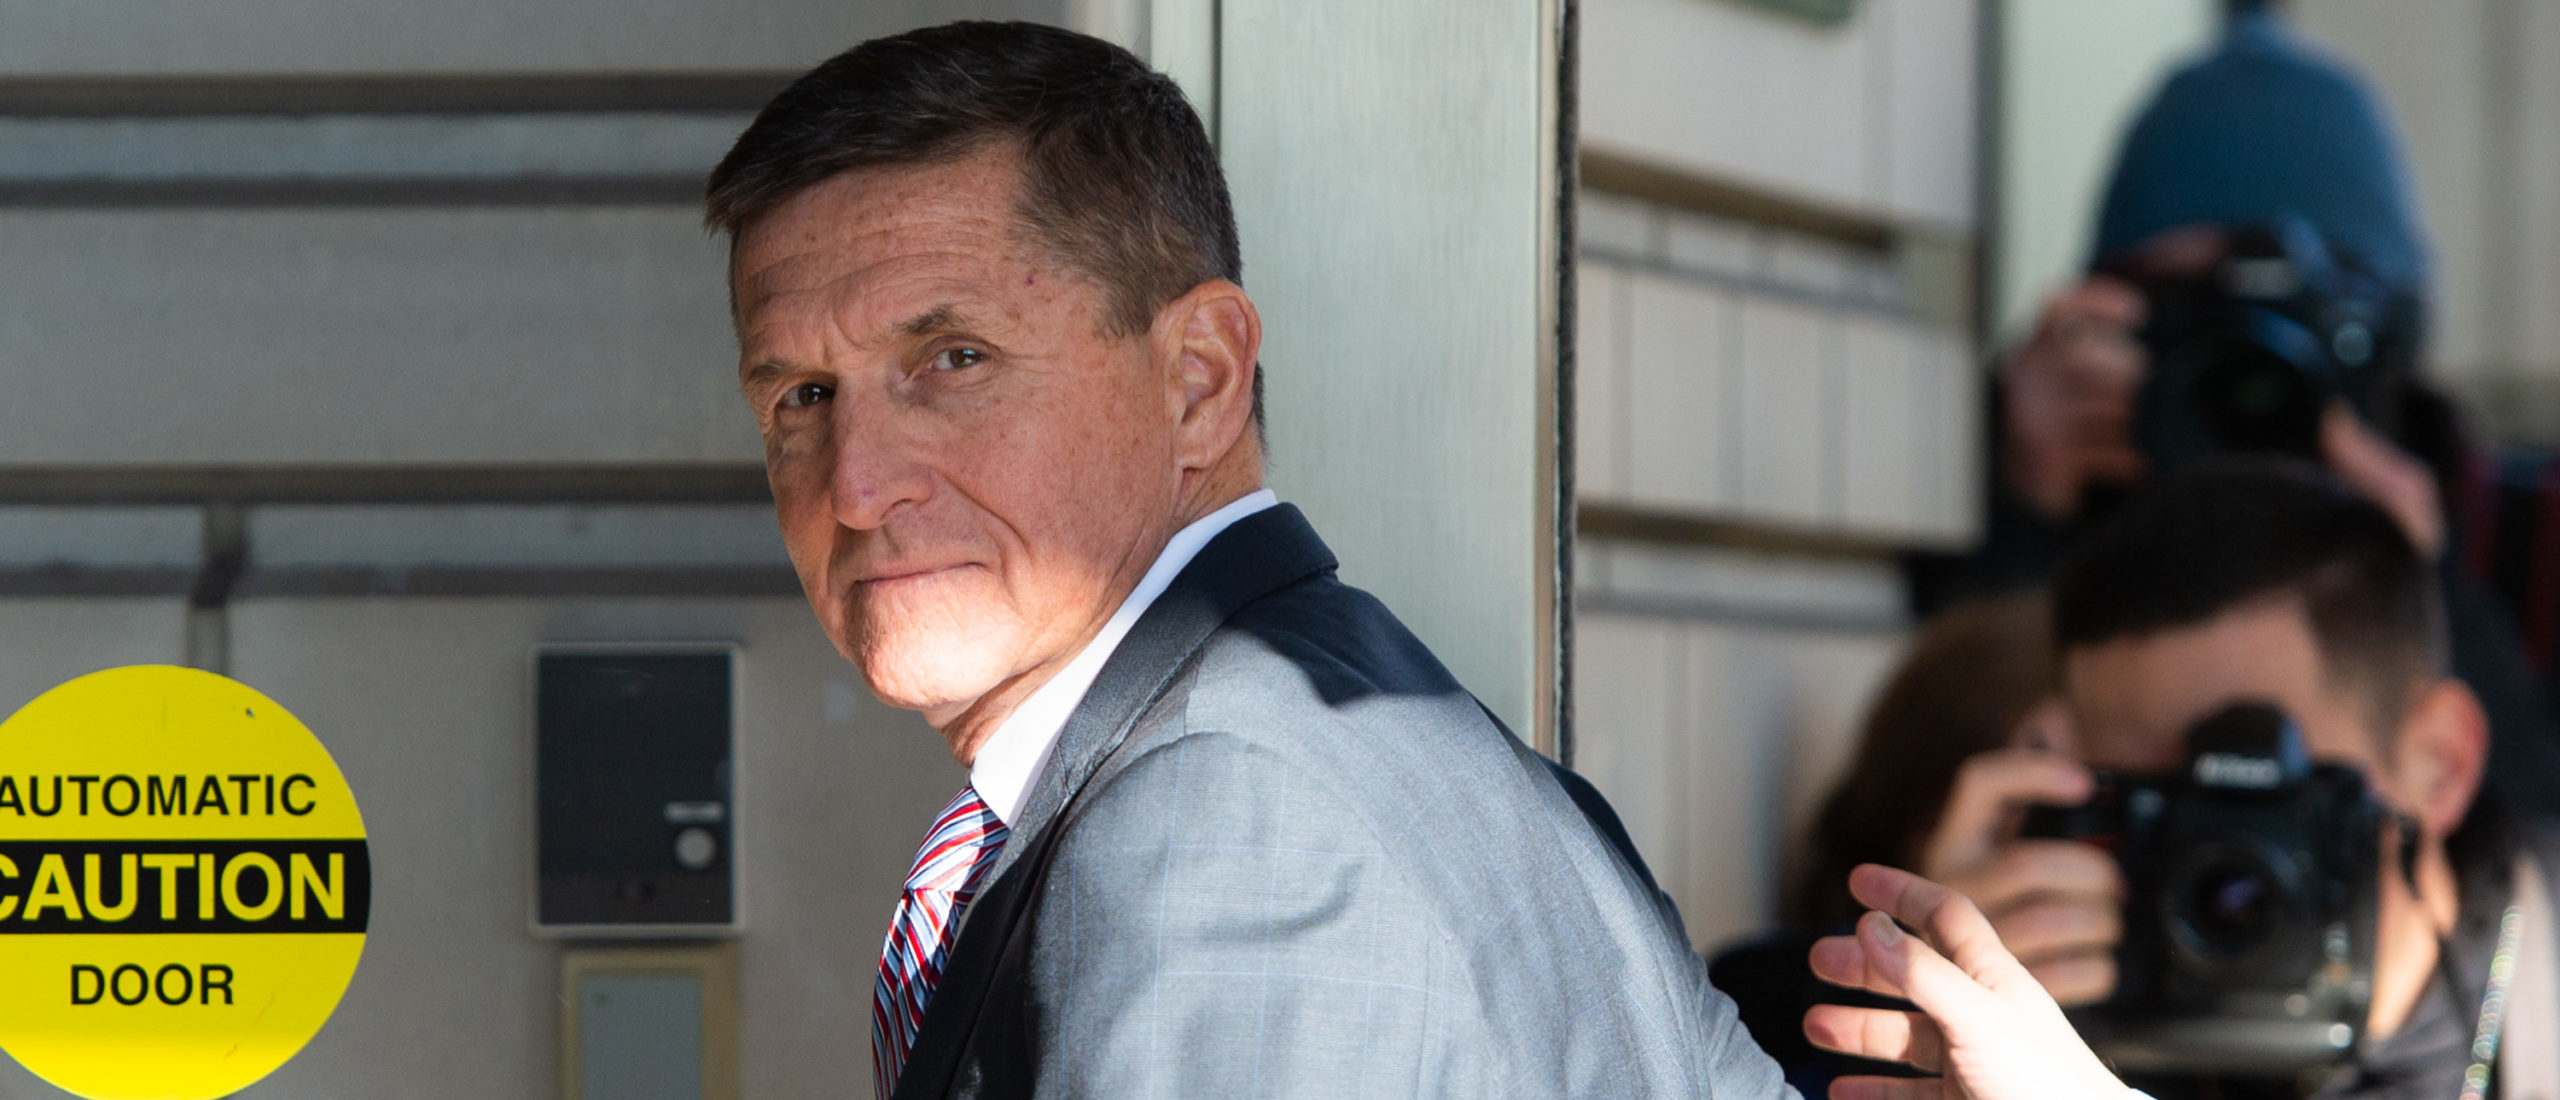 Michael Flynn Shot Down 'Ridiculous' Allegations Of Improper Contact With Russian Academic That Were Floated By Intelligence Operatives